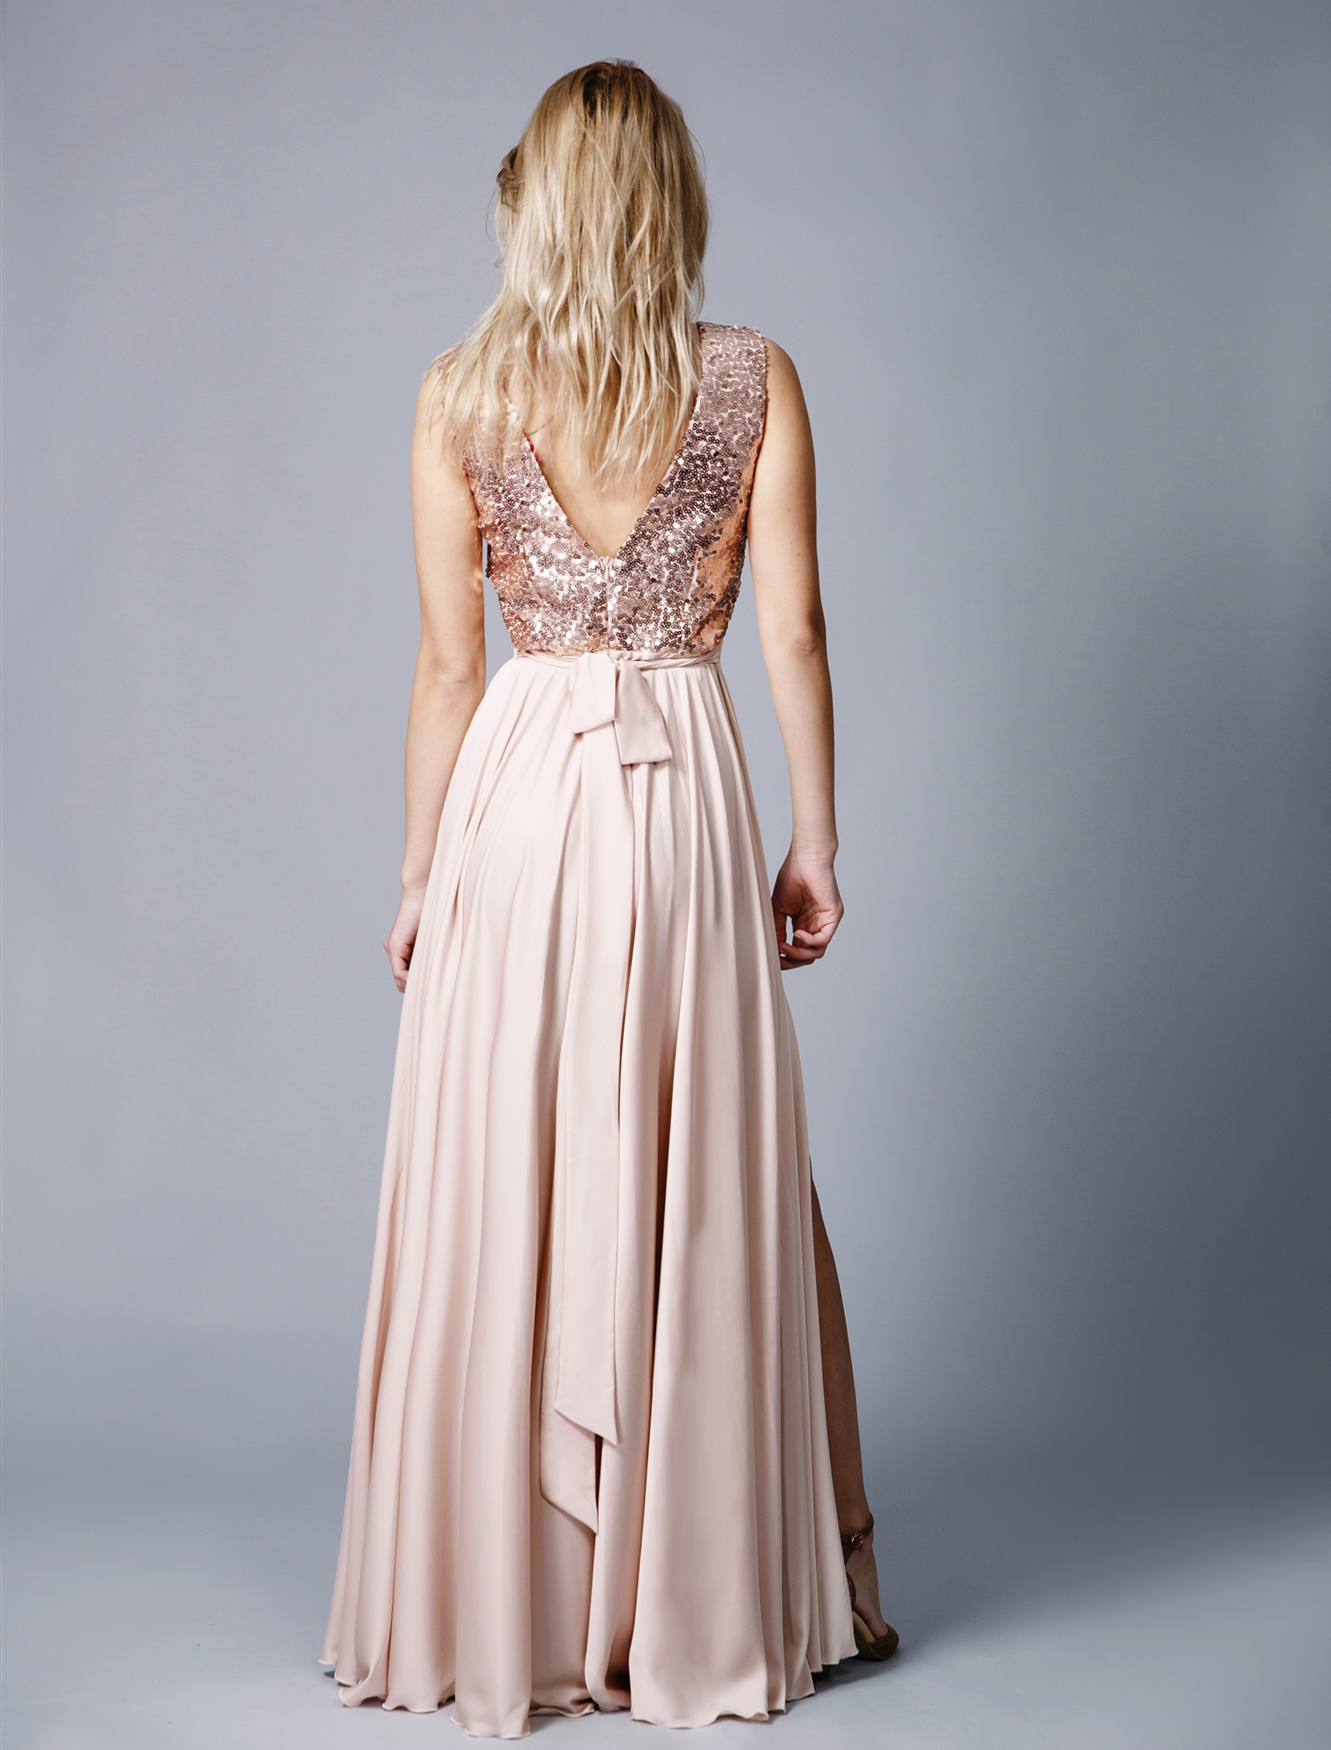 Peach Bridesmaid Dresses Chiffon Prom Party Gowns Sexy Women Bridesmaid Dress